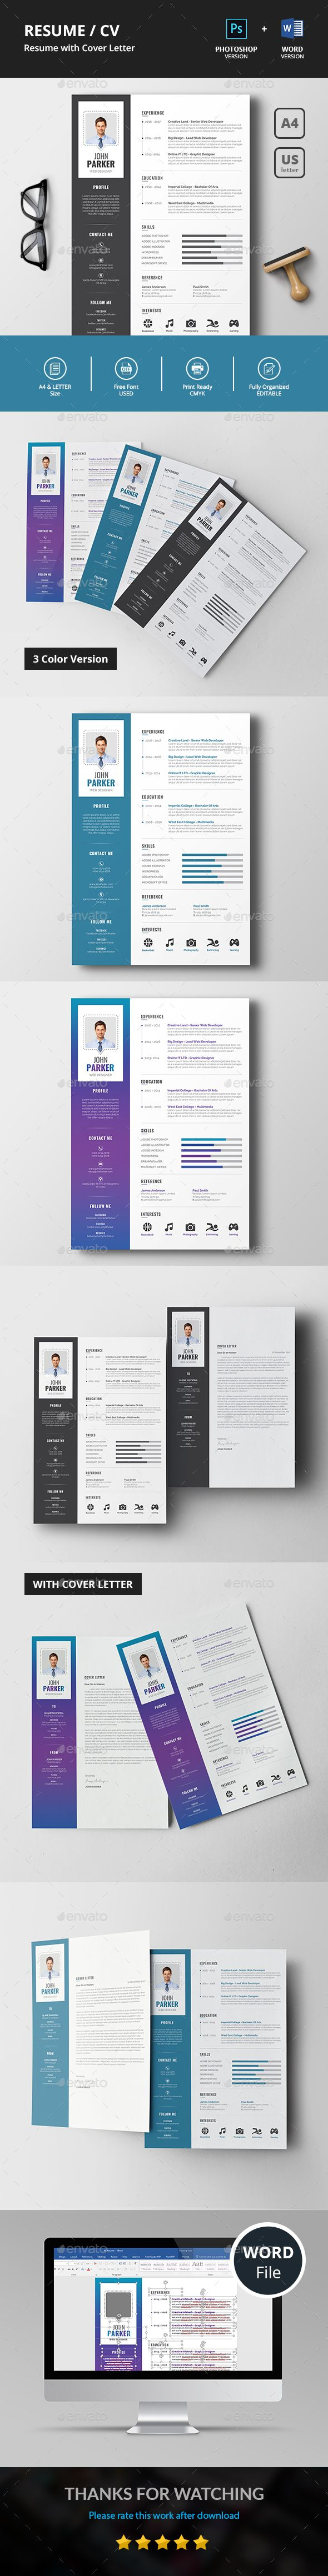 Resume/CV This is a simple clean resume template focusing Name,Experience,Education and Skills which includes Resume & Cover Letter.International A4 & US Letter sizes included. Very Easy to edit your information such as typography, wording, colors and layout.this template created with strong baseline.